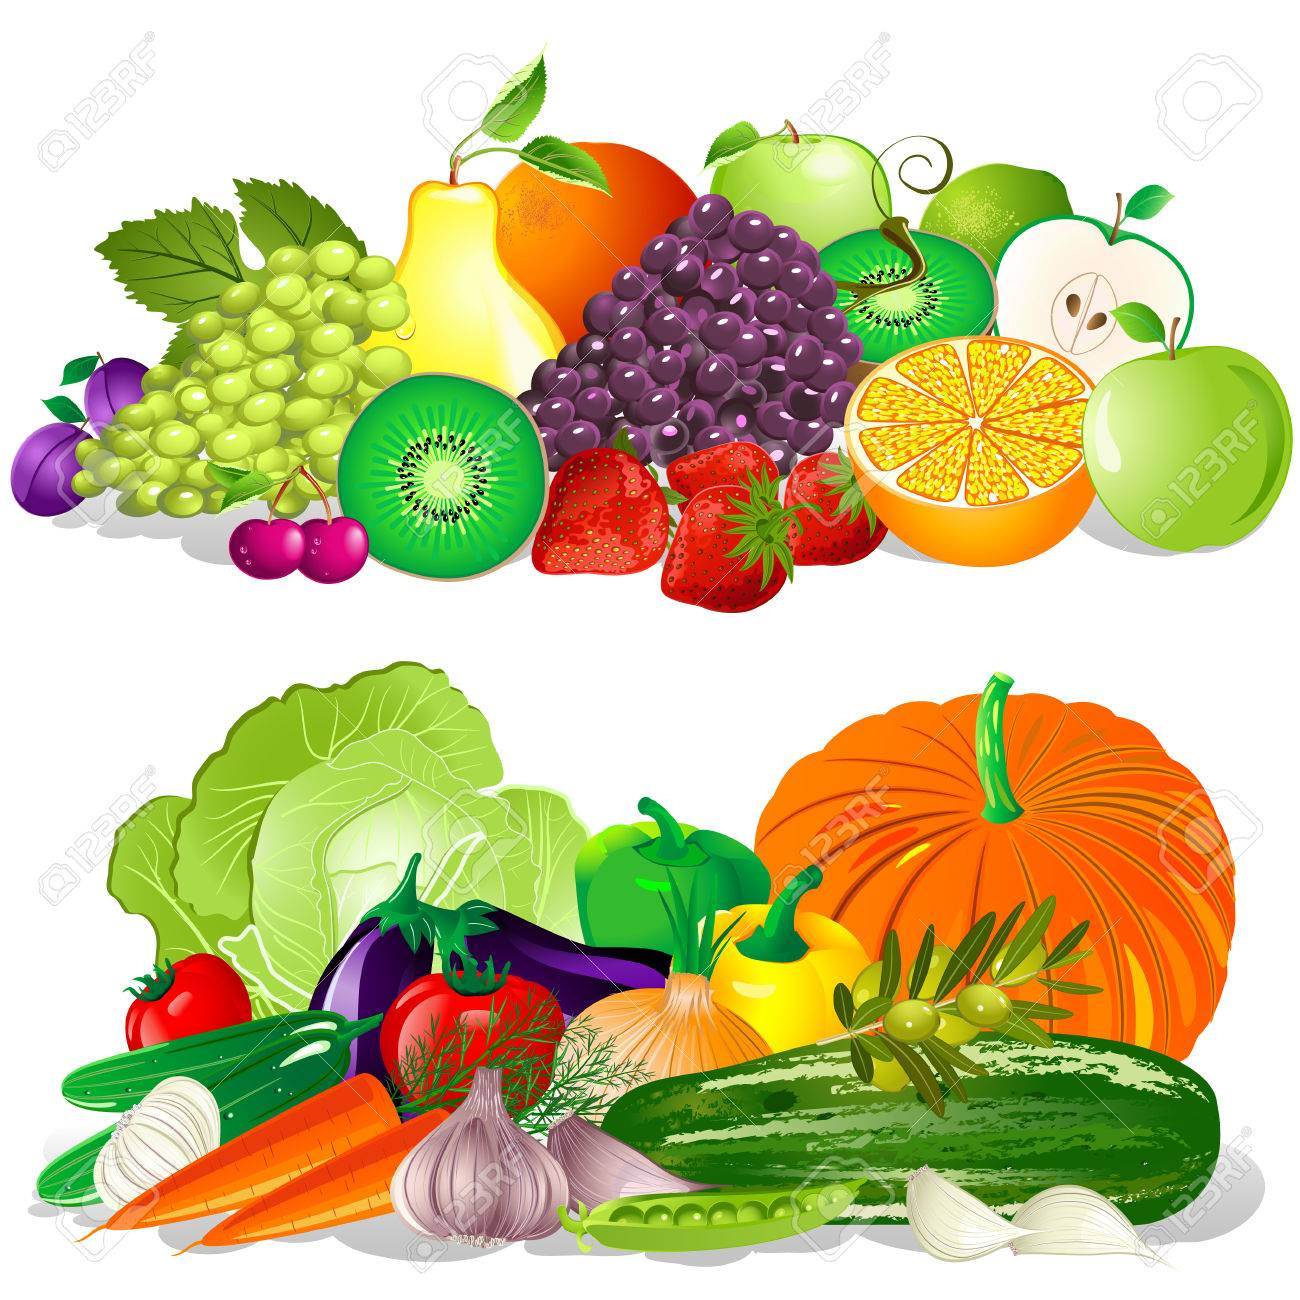 113 742 fruit and vegetables stock vector illustration and royalty